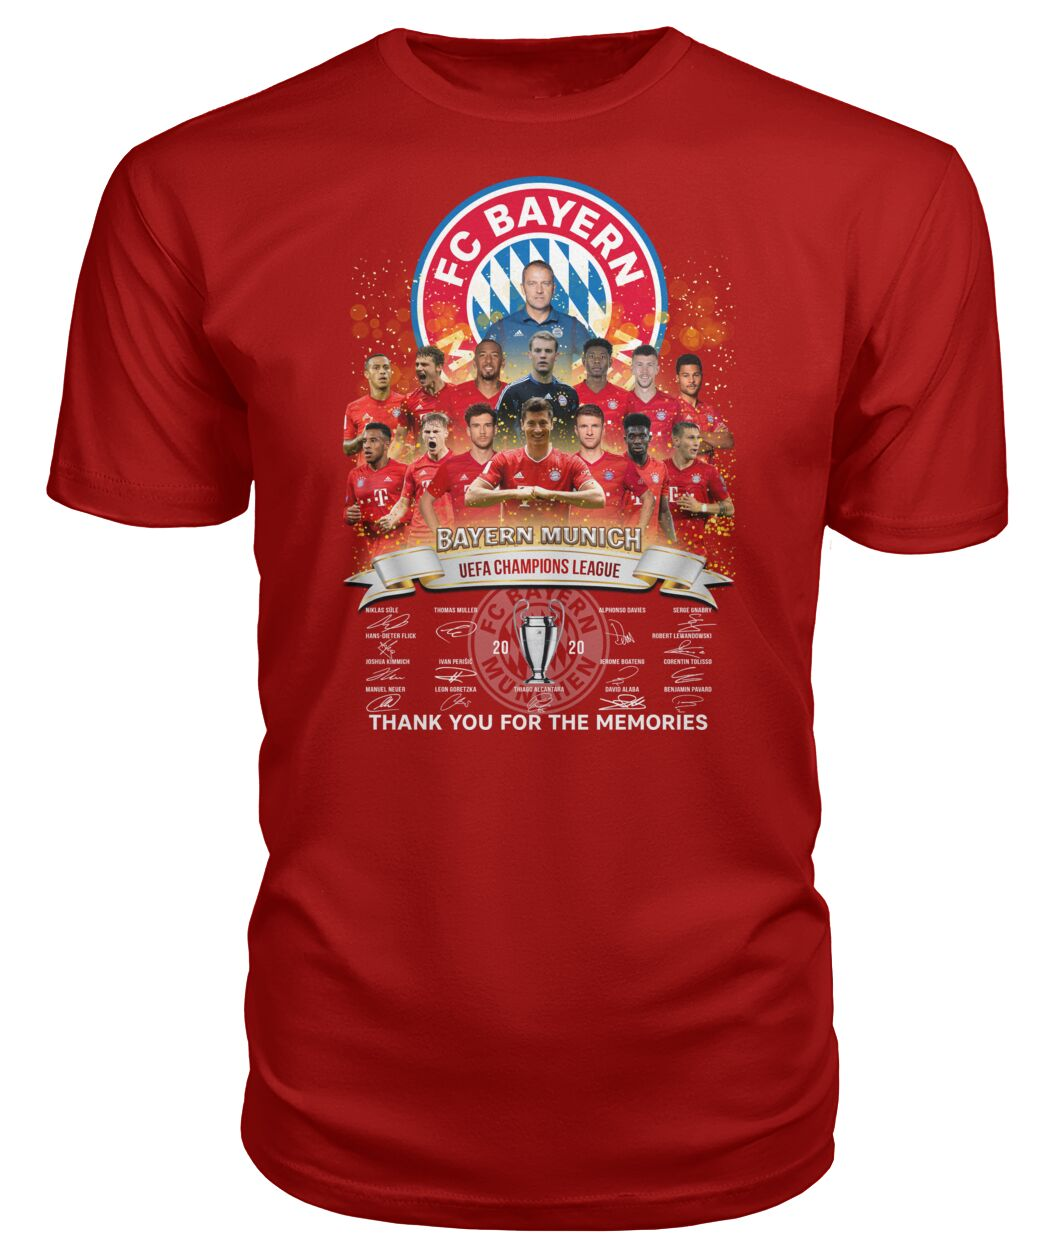 fc bayern munich 2020 uefa champions league thank you for the memories signatures shirt 1